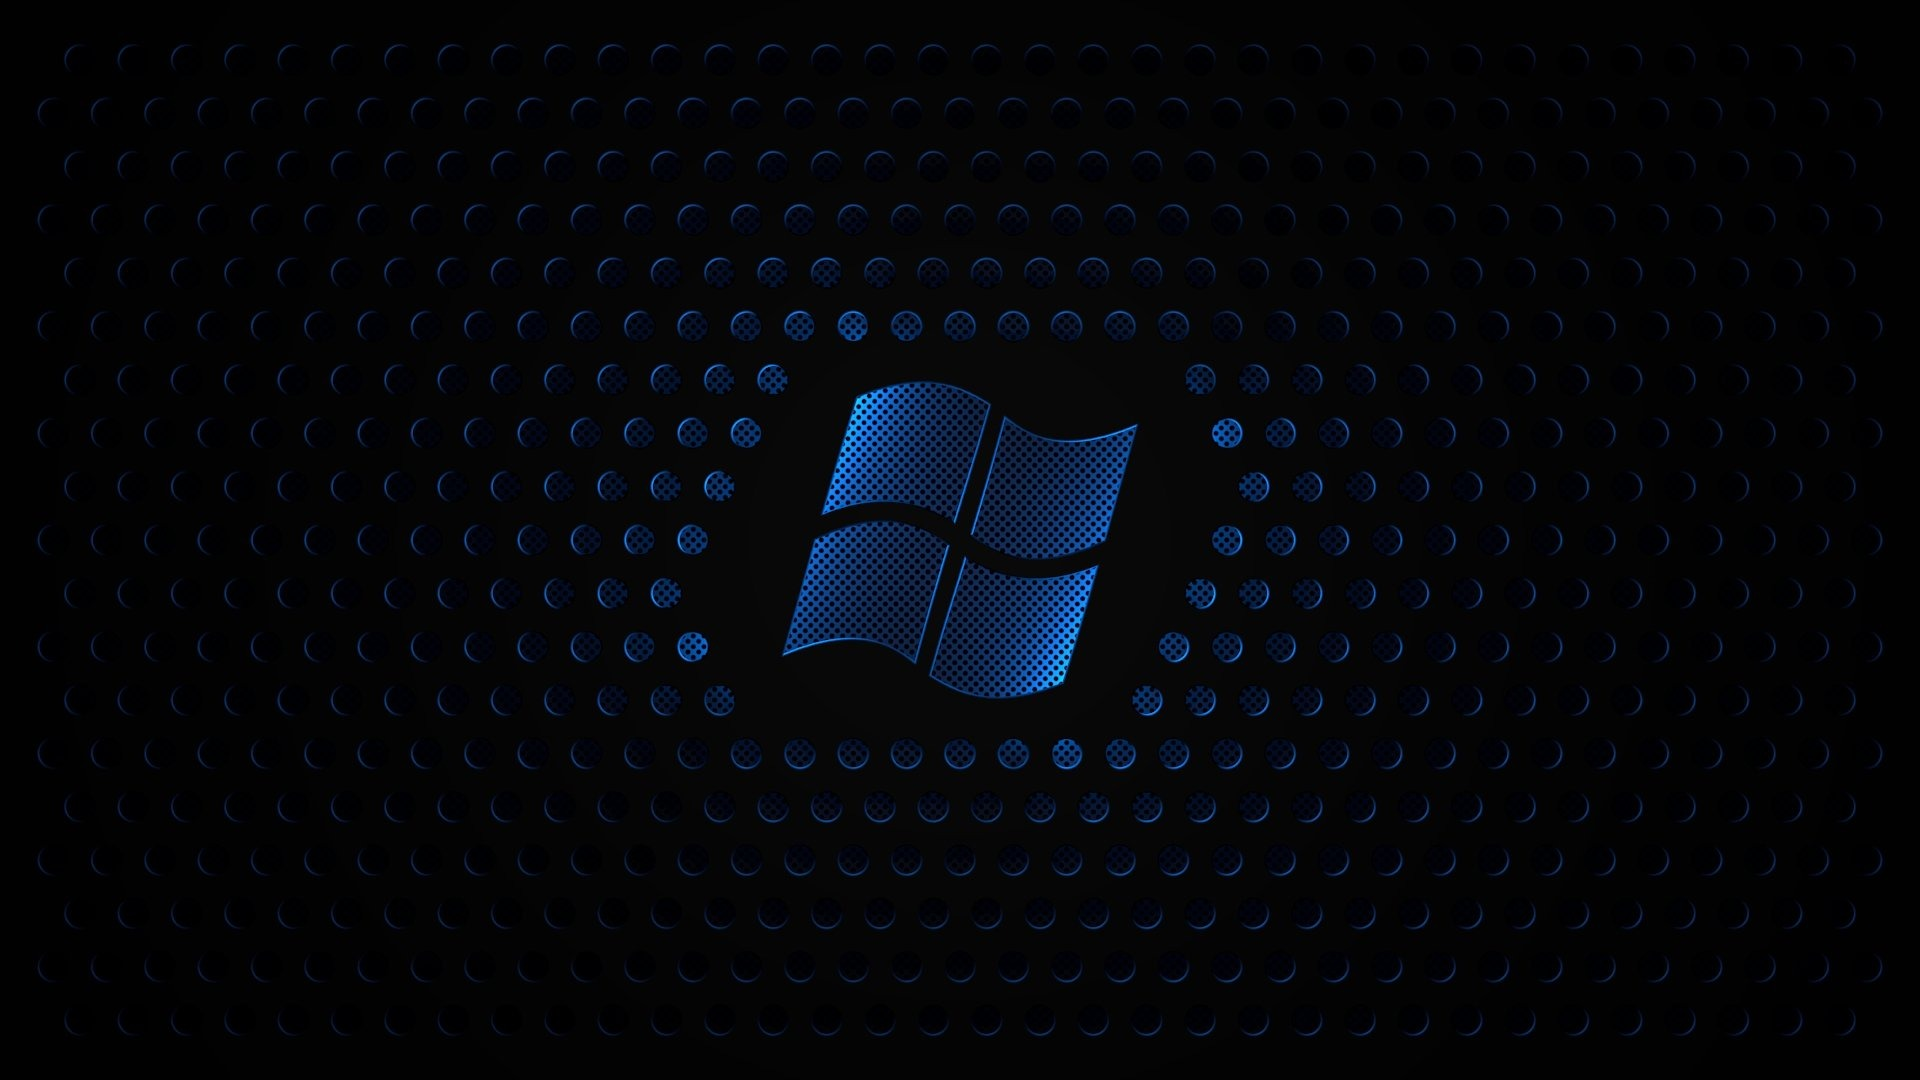 Blue Windows Sign With Black Background Wallpaper Full HD Wallpapers 1920x1080